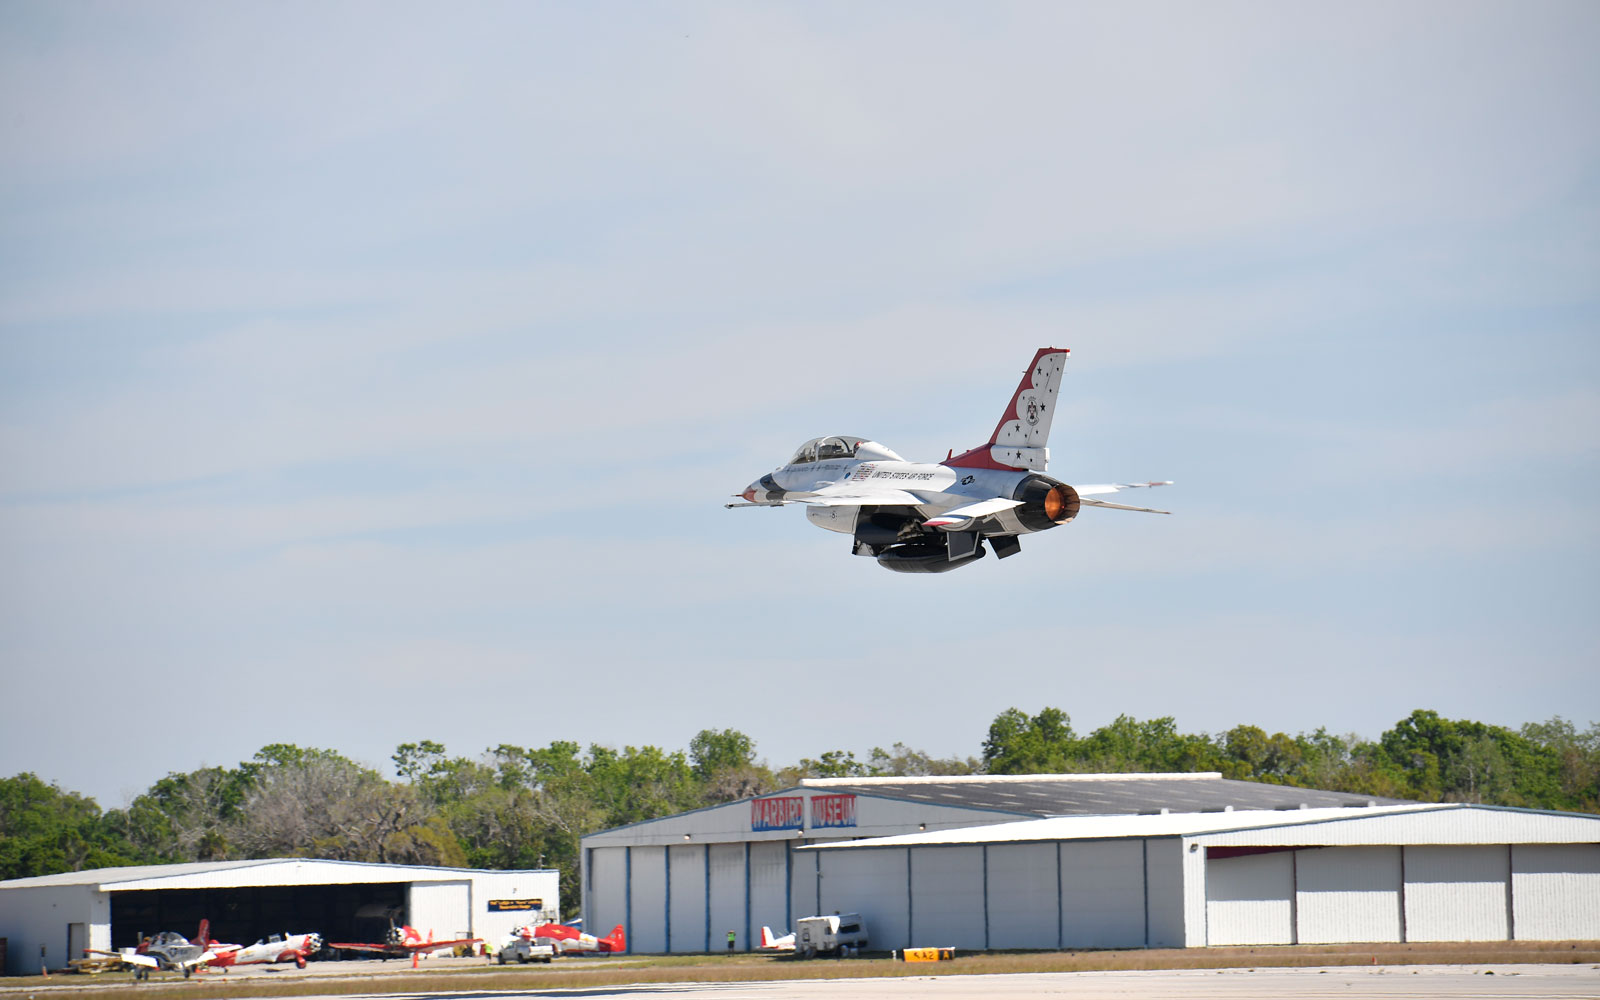 f-16 in the air